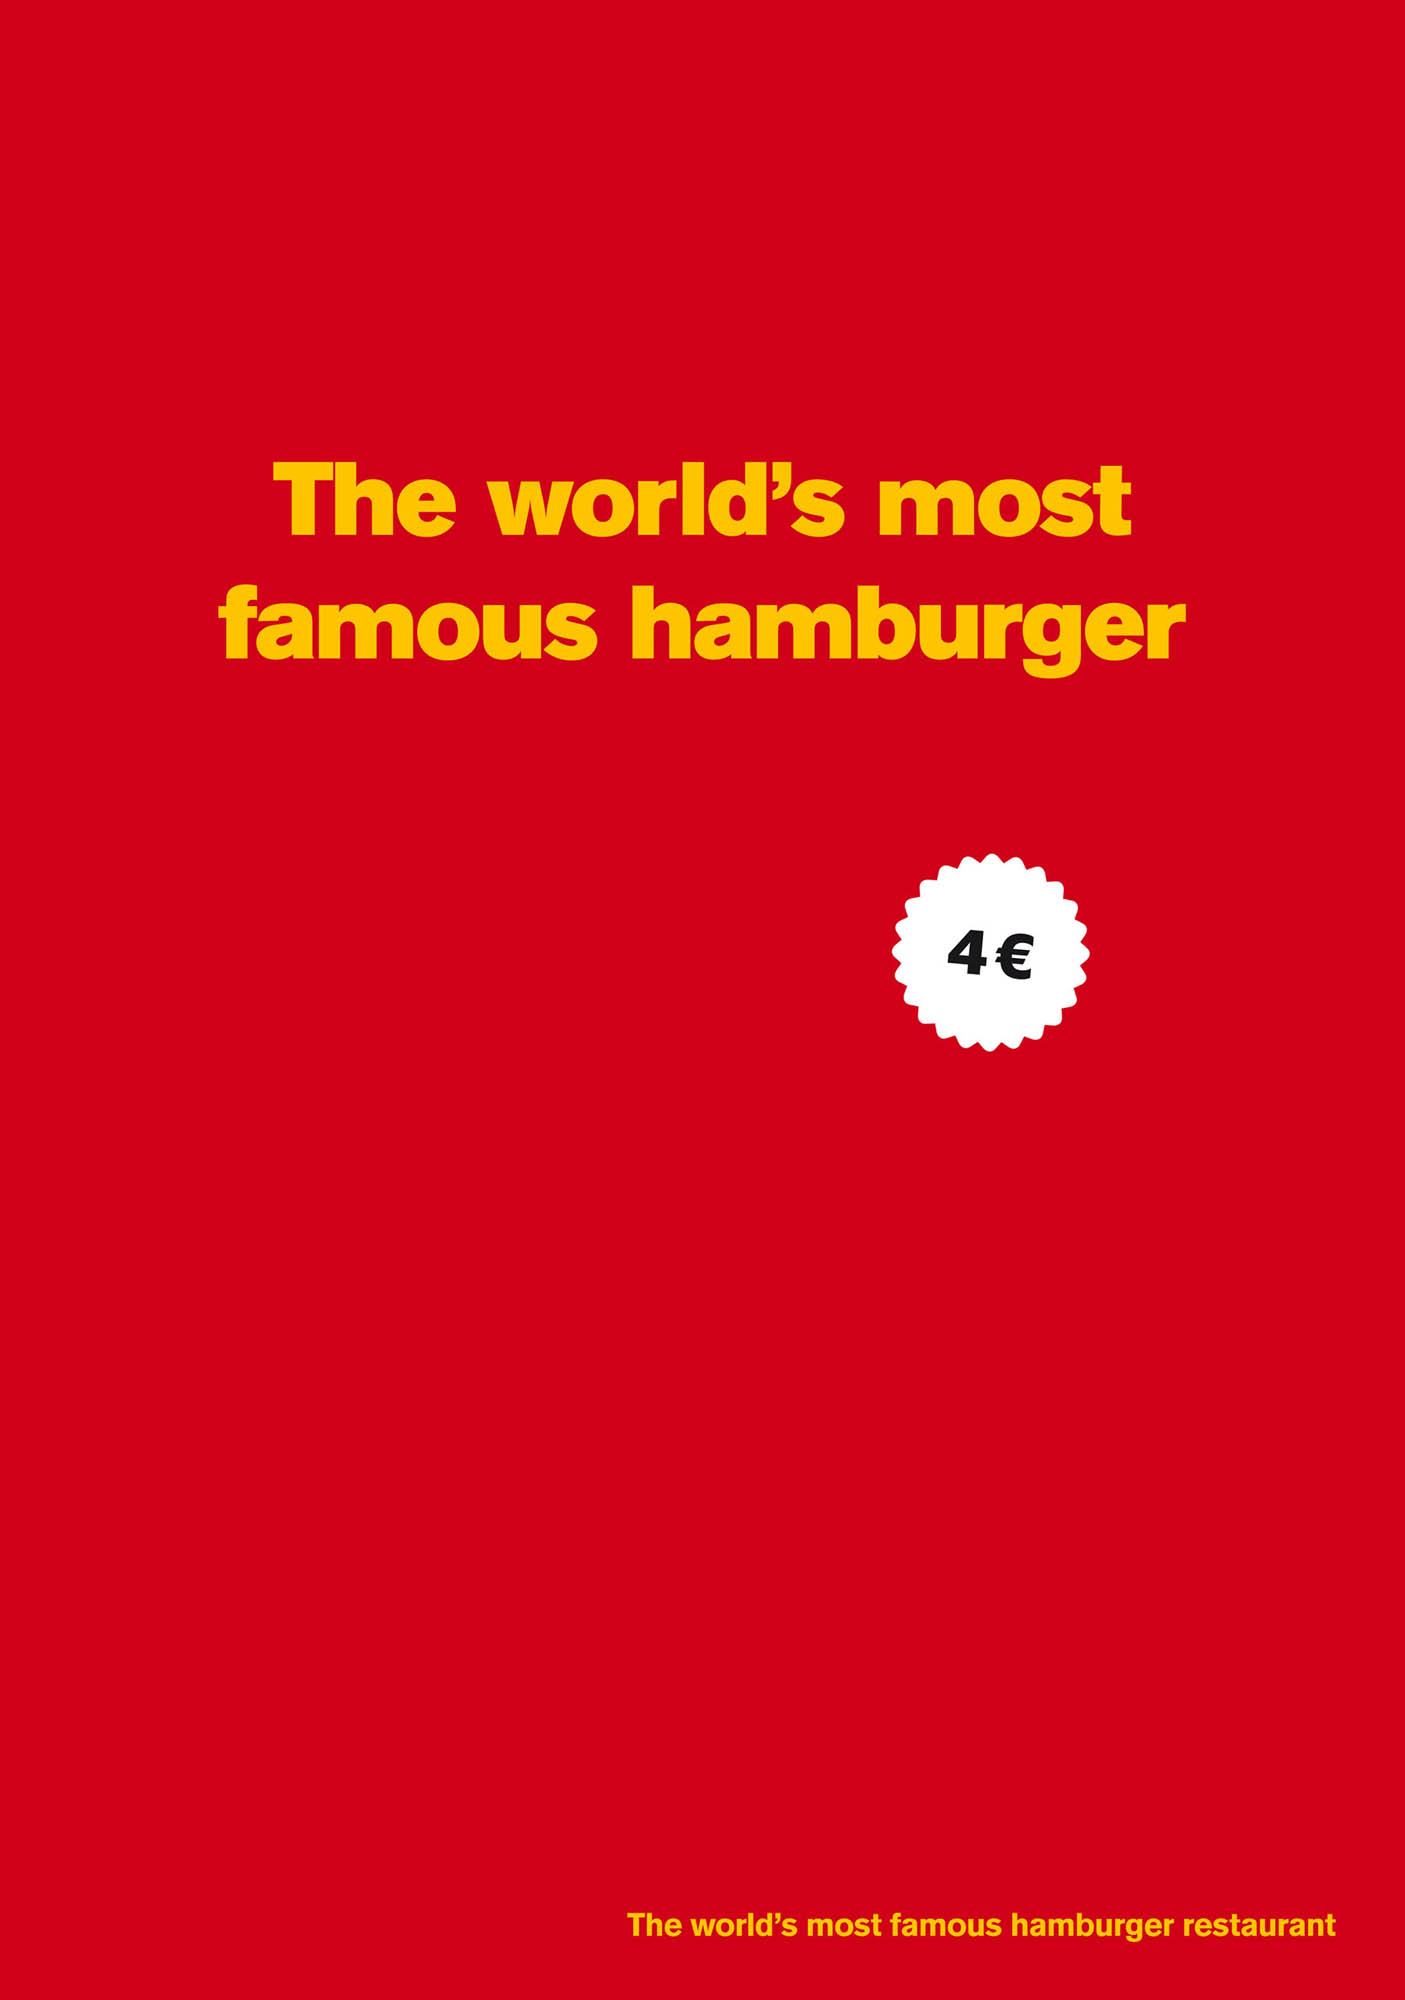 http://www.ibelieveinadv.com/commons/The_world_s_most_famous_hamburger.jpg